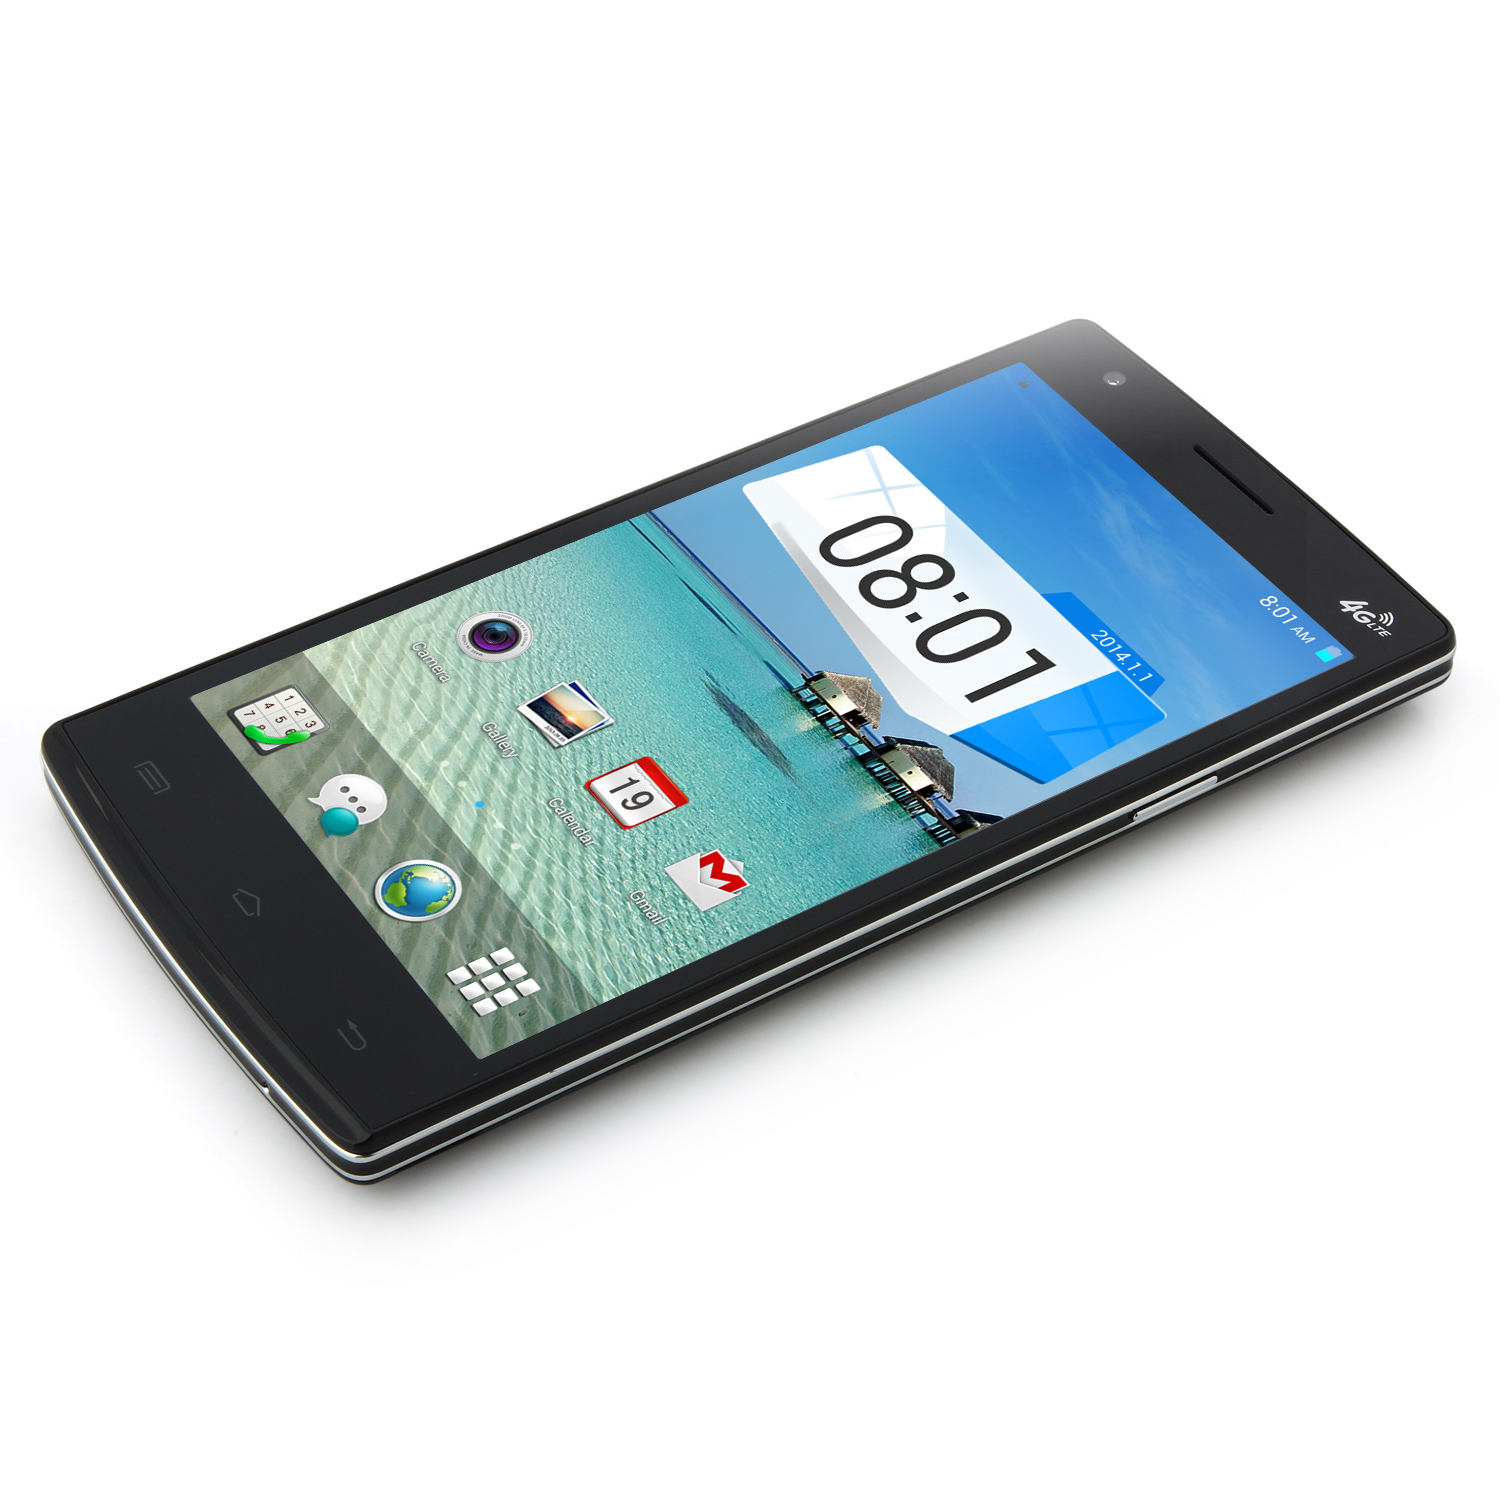 Mpie G7 Smartphone 4G LTE Android 4.4 MTK6582 Quad Core 2GB 8GB 5.0 Inch OTG NFC Black